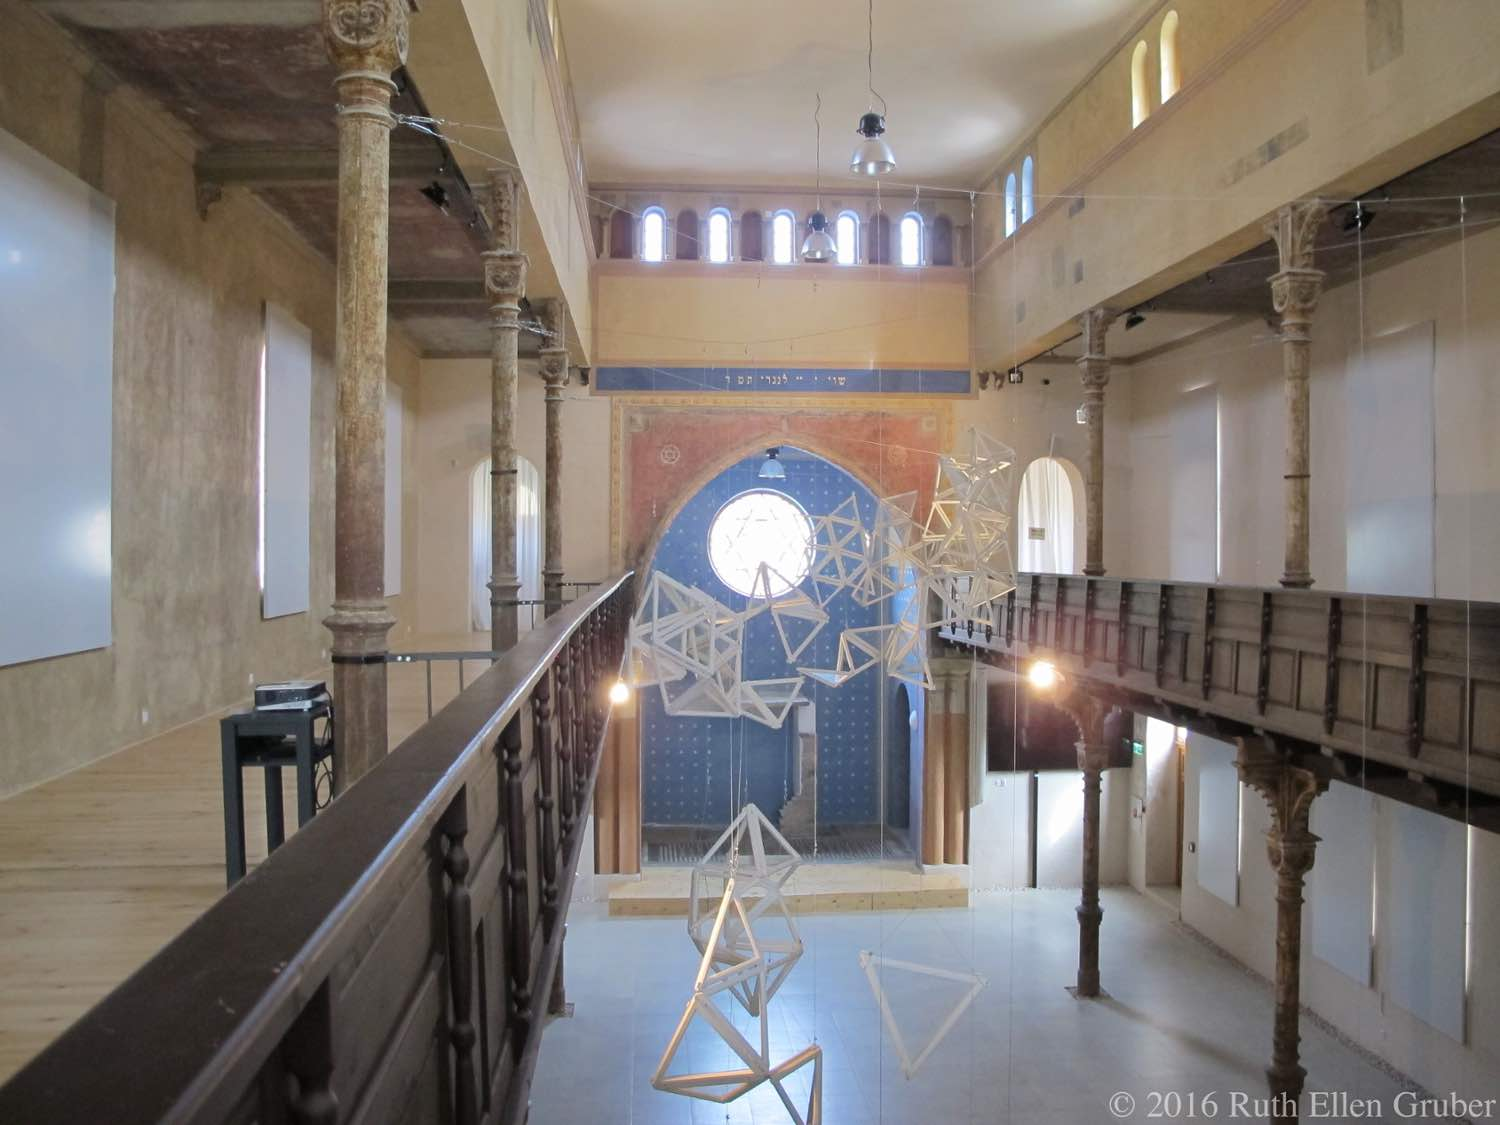 Trnava, Slovakia Status Quo synagogue, interior, with an exhibition